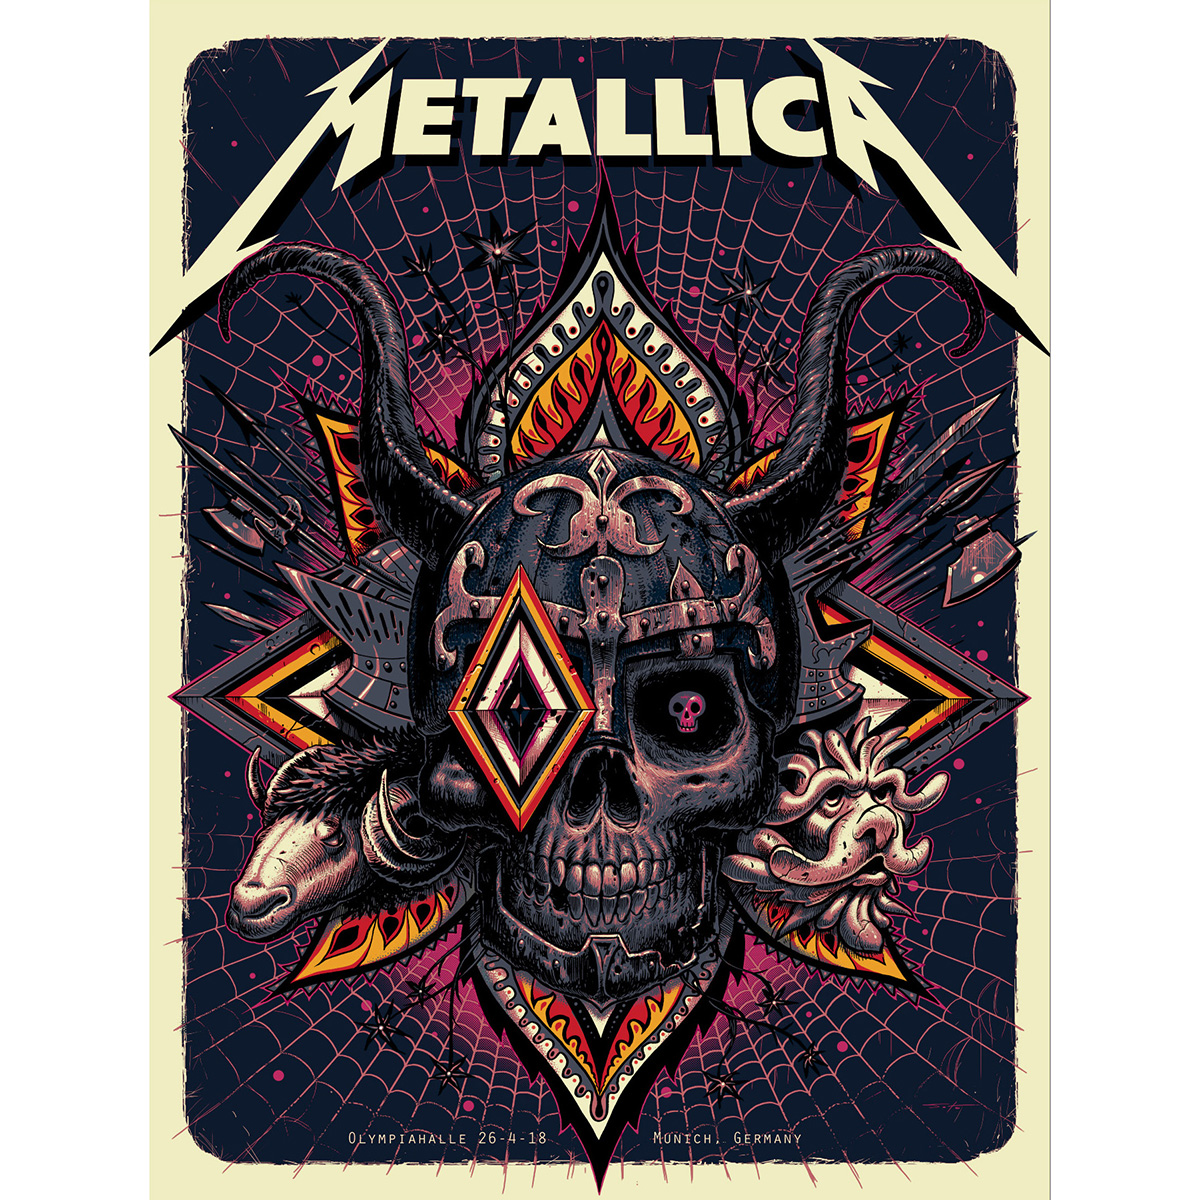 Munich April 26th – Limited Edition Numbered Screen Printed Event Poster - Metallica